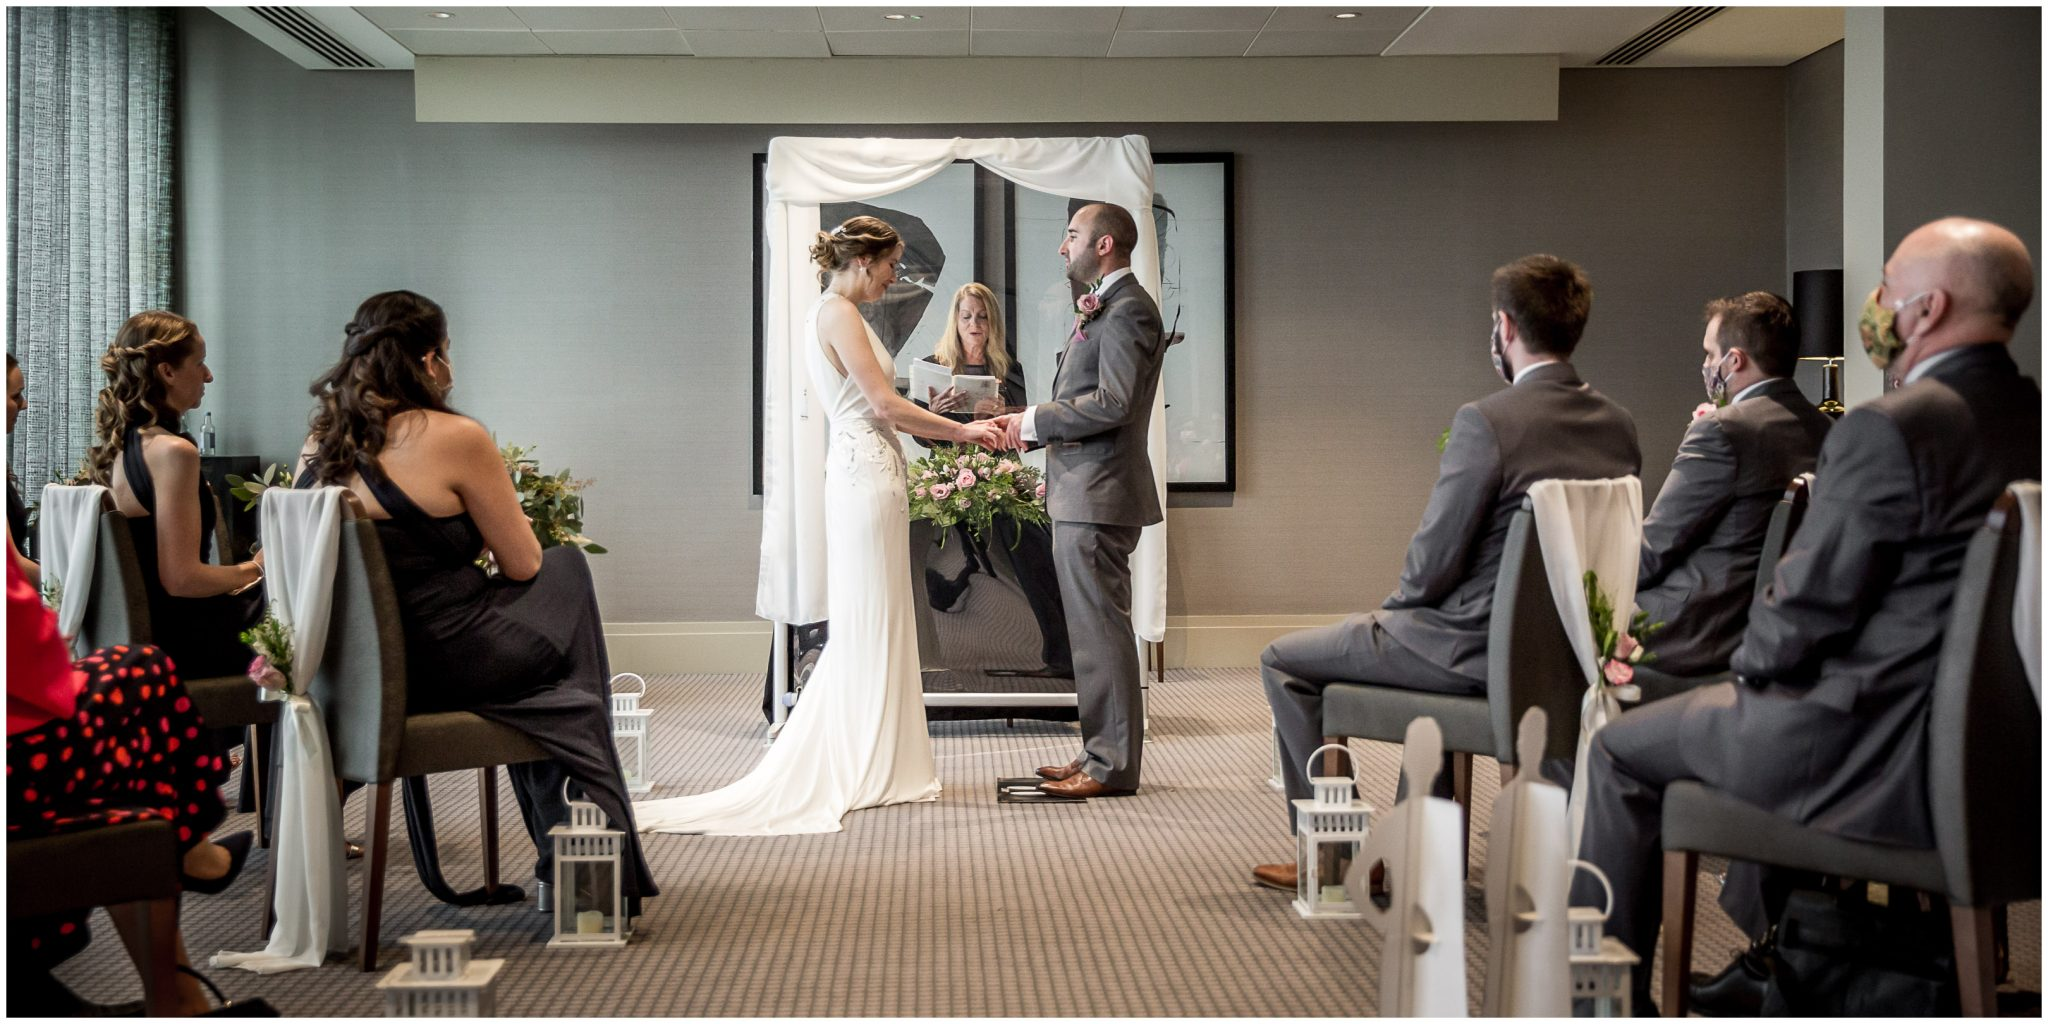 Couple holding hands as registrar reads marriage vows